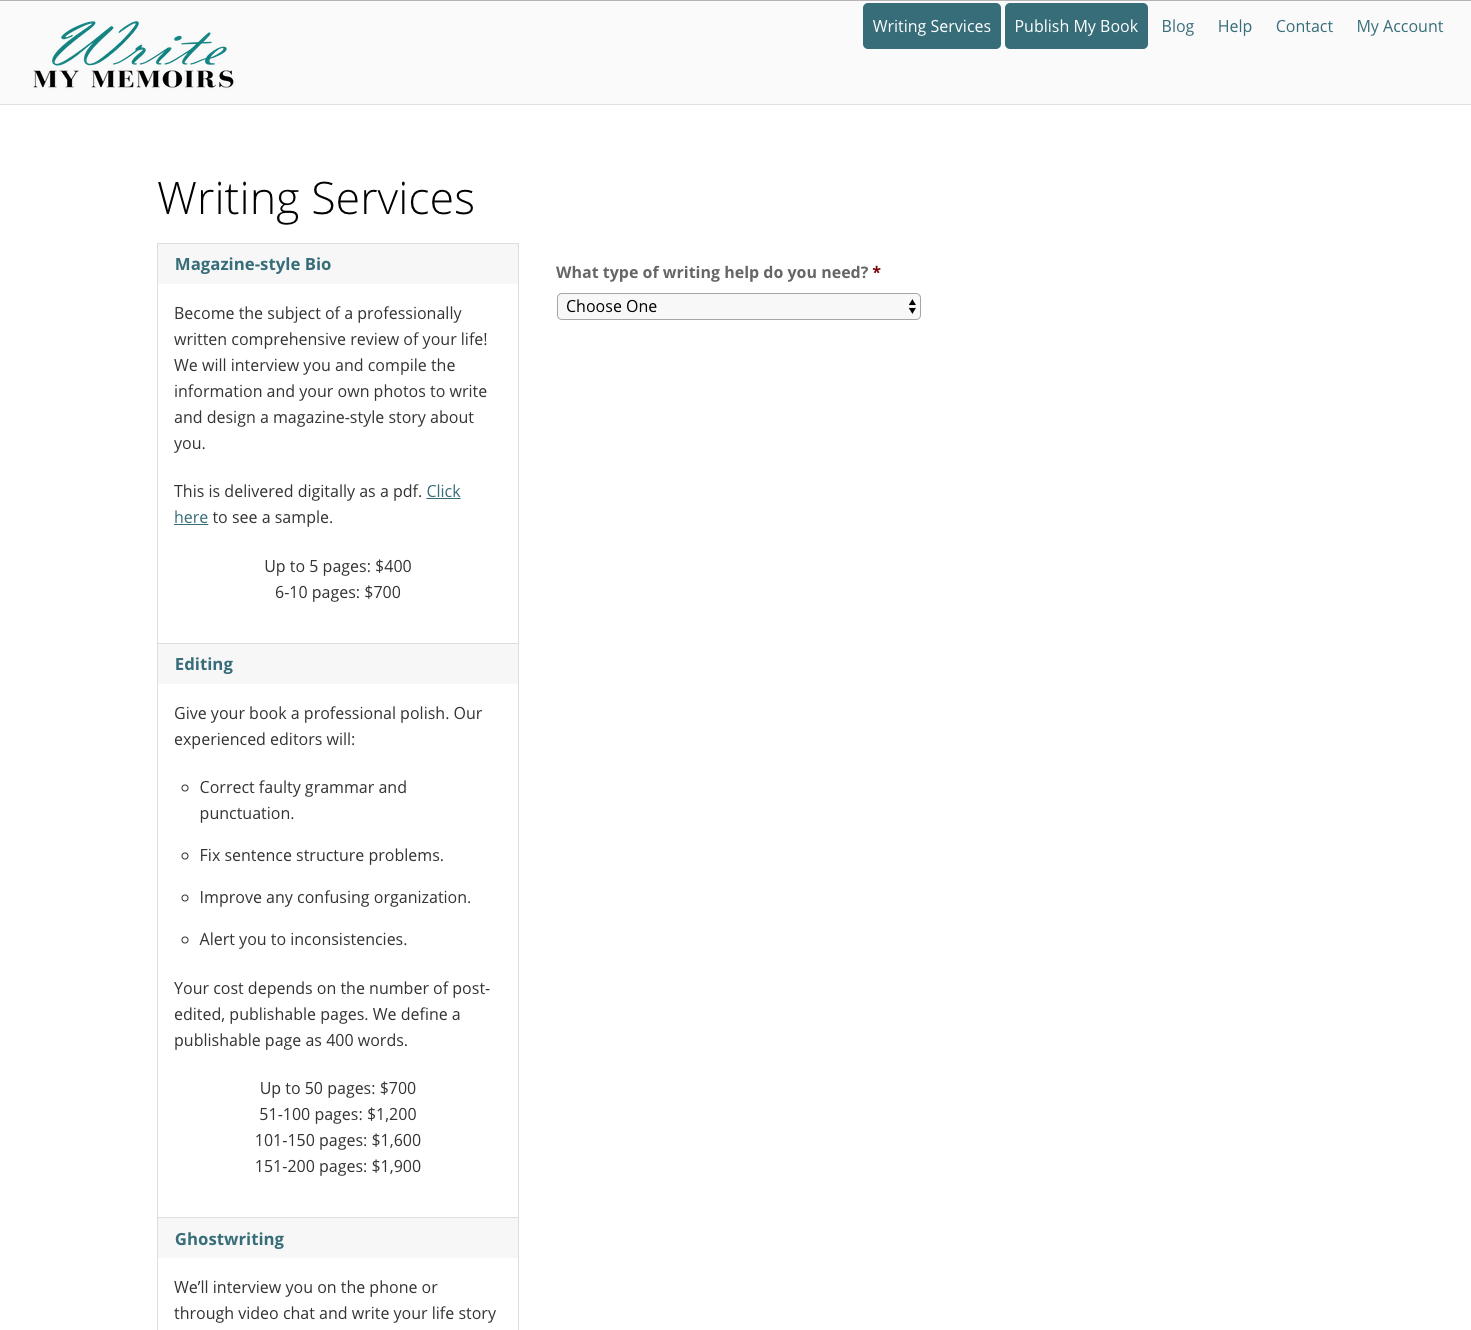 """Fill out the form in our Writing Services section, and one of our professional editors will polish your work for an affordable fee. We're good at retaining your """"author's voice"""" while correcting grammatical errors and alerting you to redundancies, inconsistencies and organizational problems."""